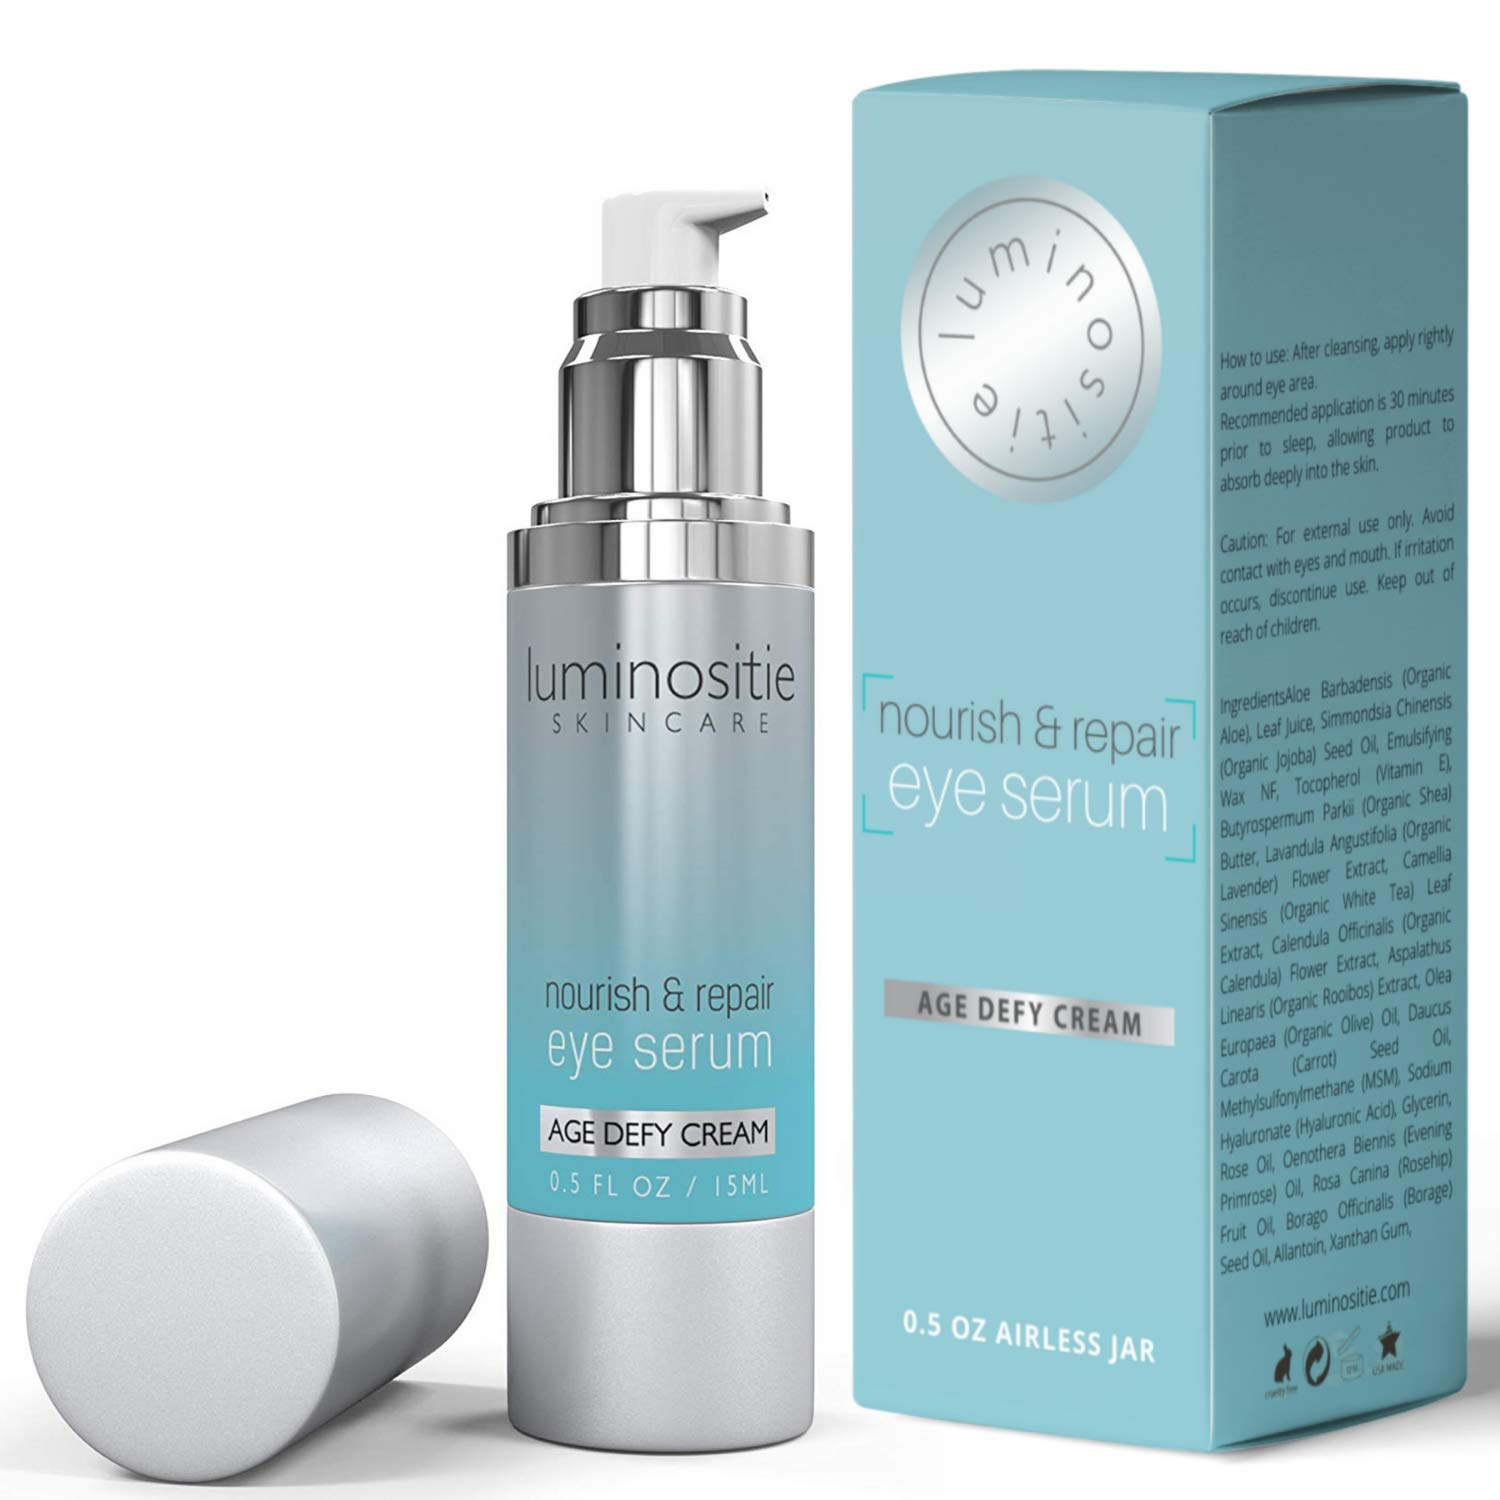 Under Eye Serum For Tight, Puffy Eyes - Treatment For Under Eye Circles, Under Eye Bags, Wrinkles & Fine Lines - Anti-Aging Eye Vitamins Penetrates Deep & Refreshes Cells To Firm Delicate Eye Area